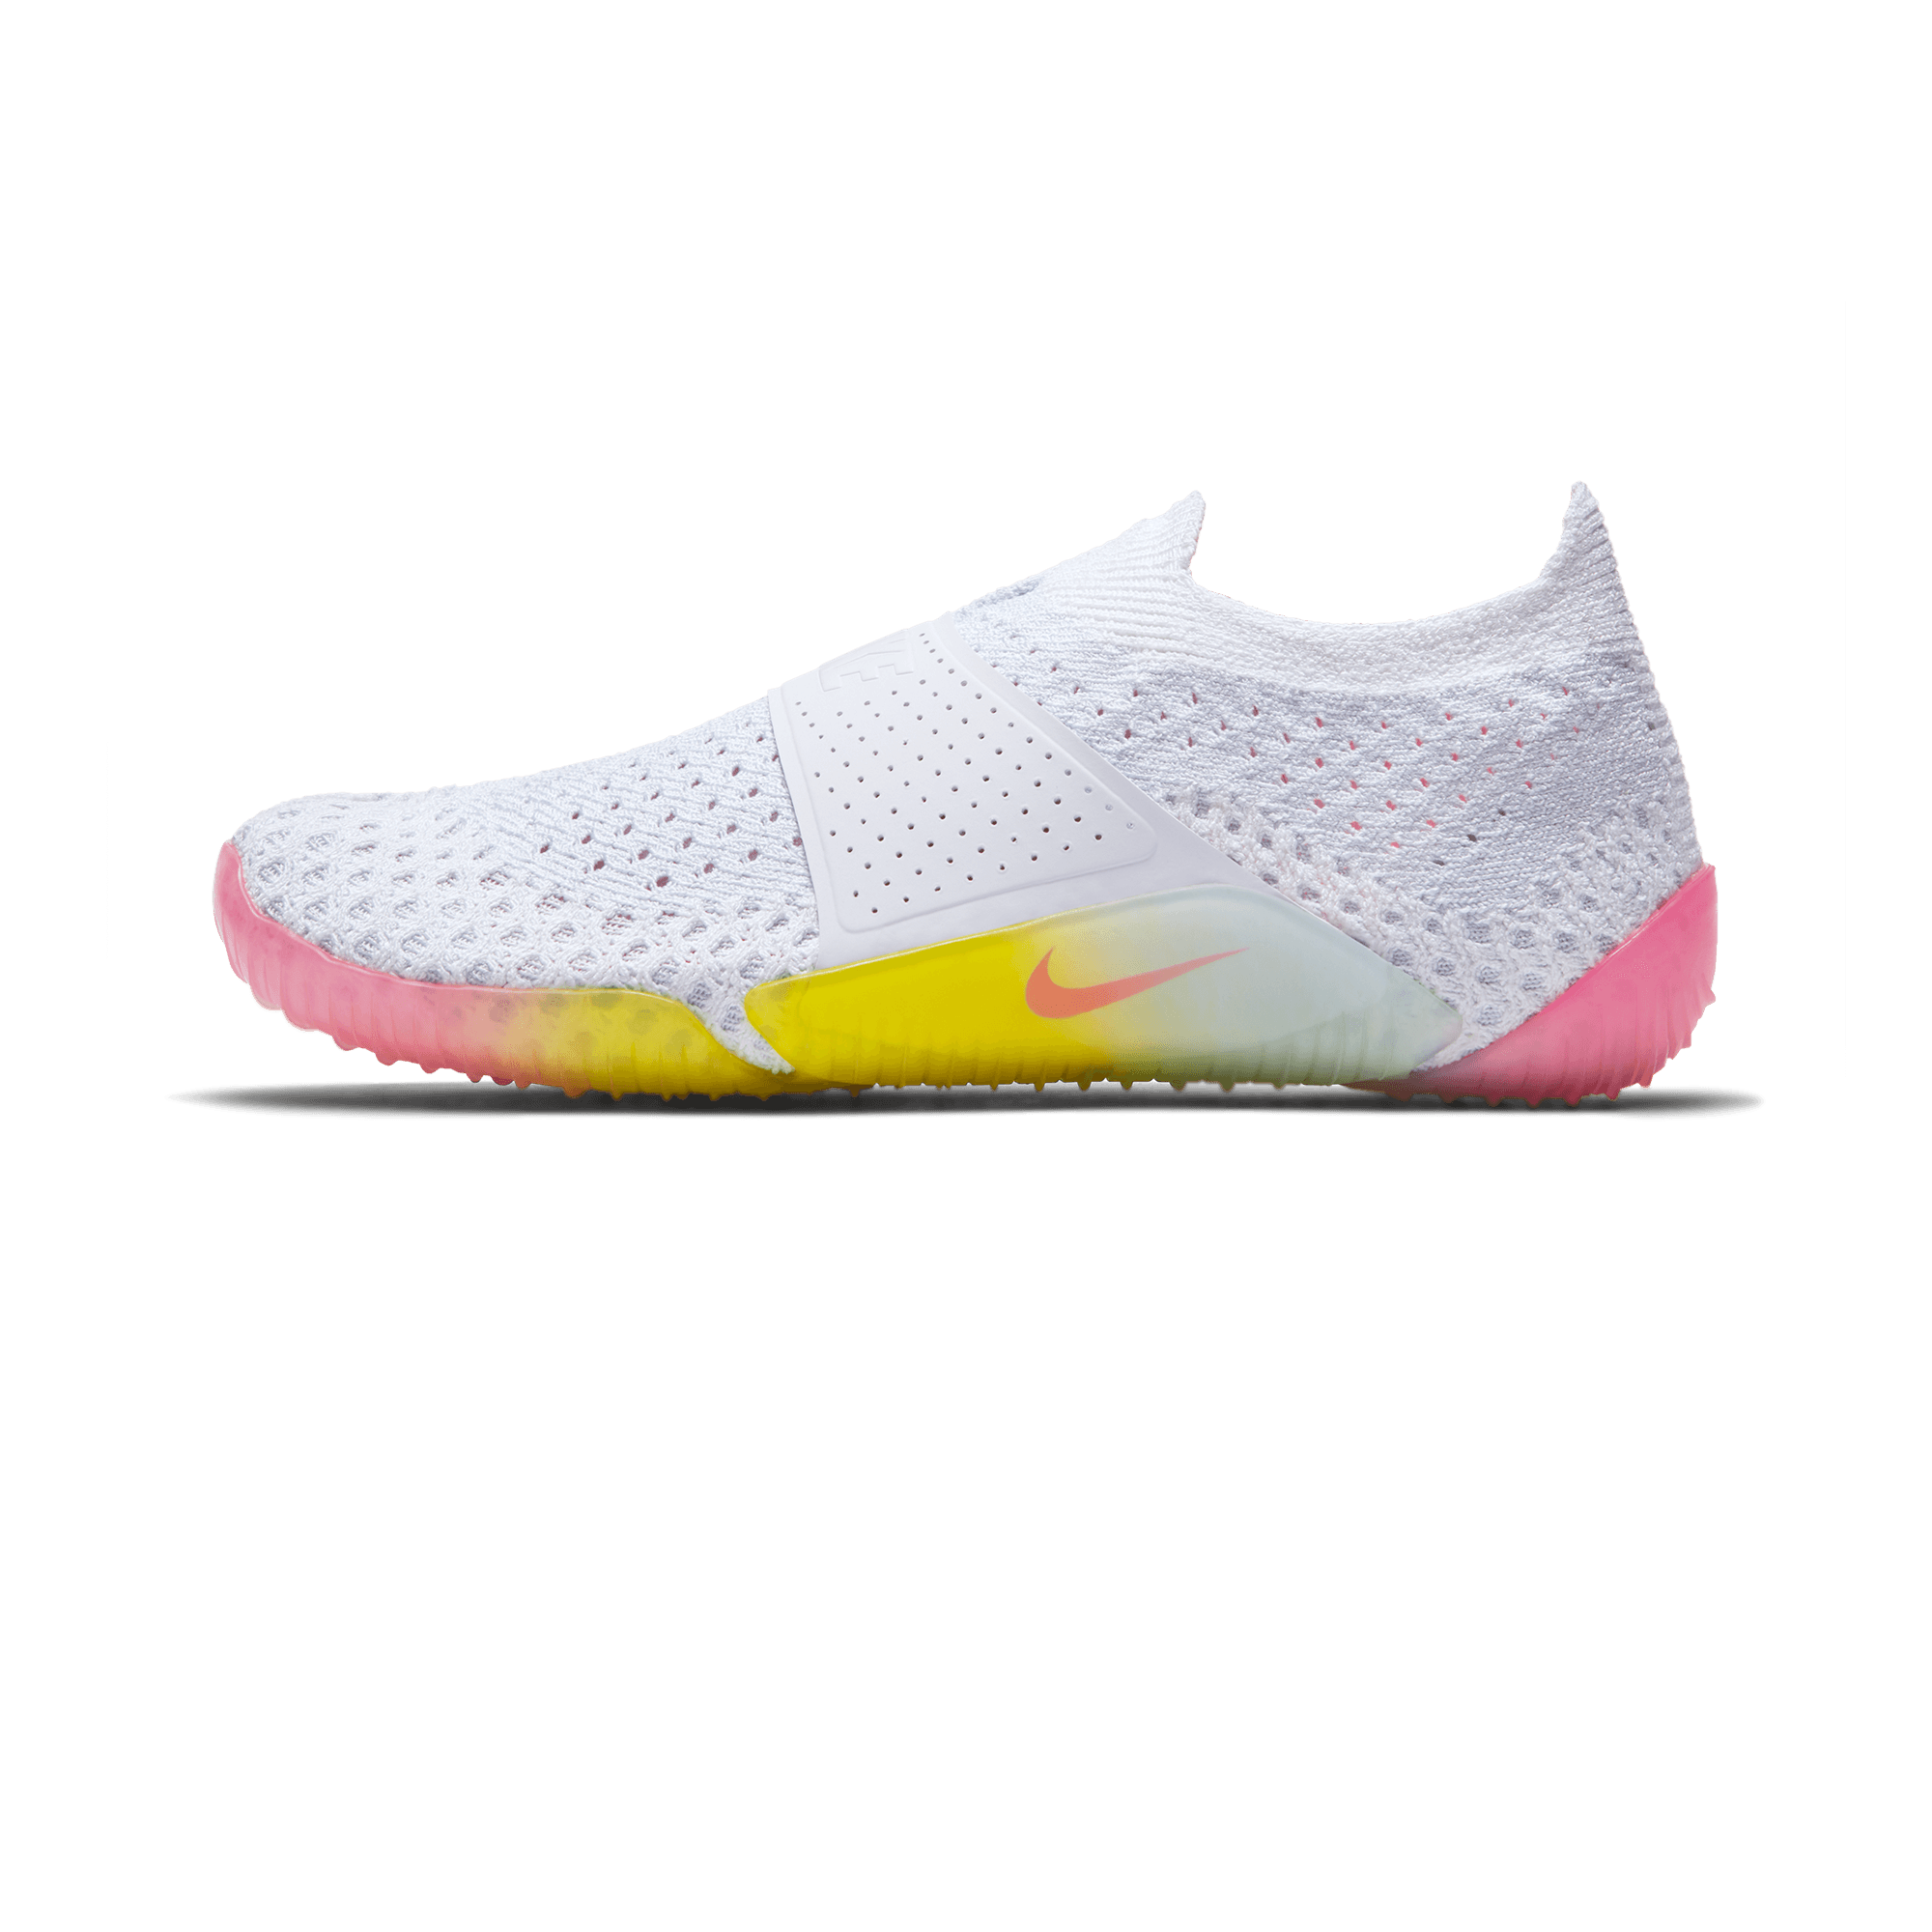 City Knife 3 Flyknit white/racer pink